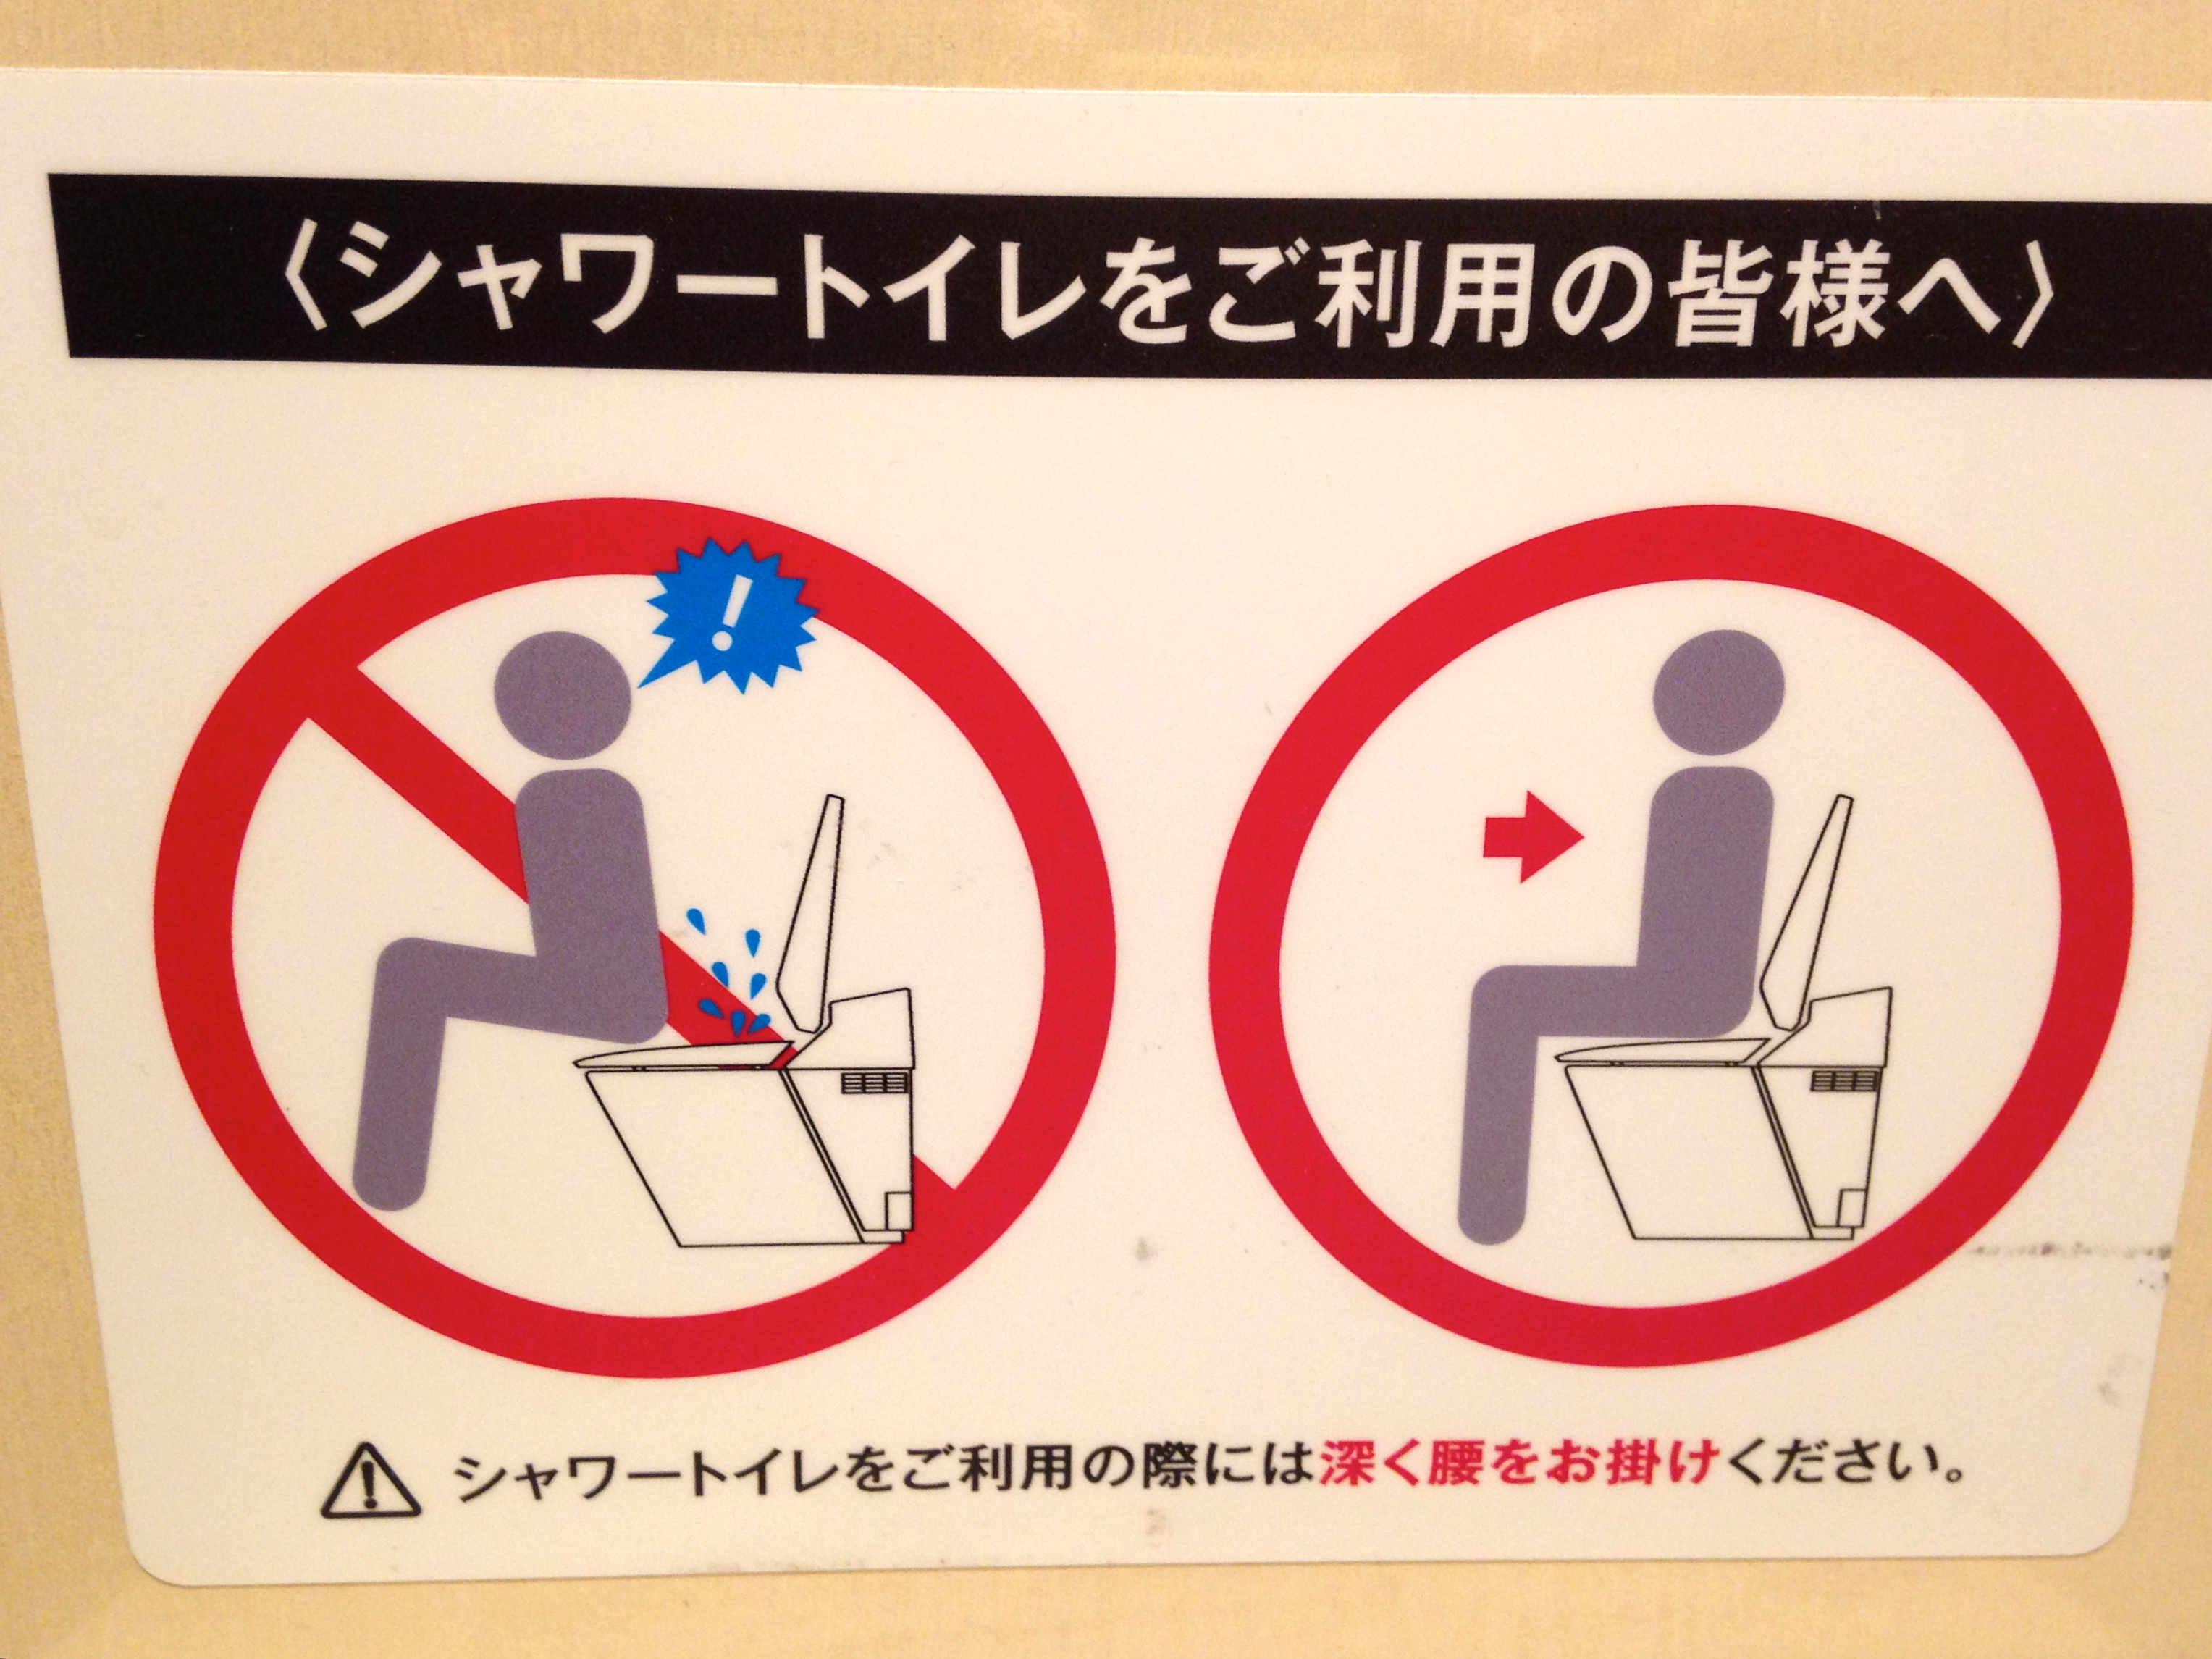 Japanese toilets explained – Our Osaka Blog